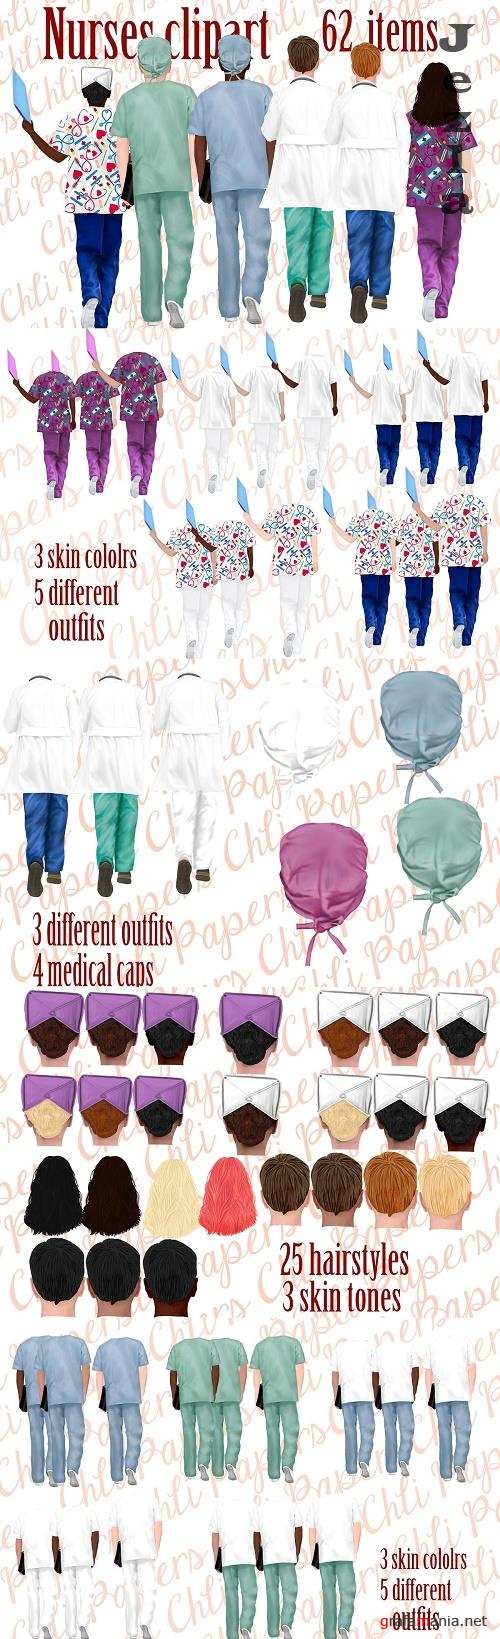 Nurses clipart,Medical clipart - 4768641